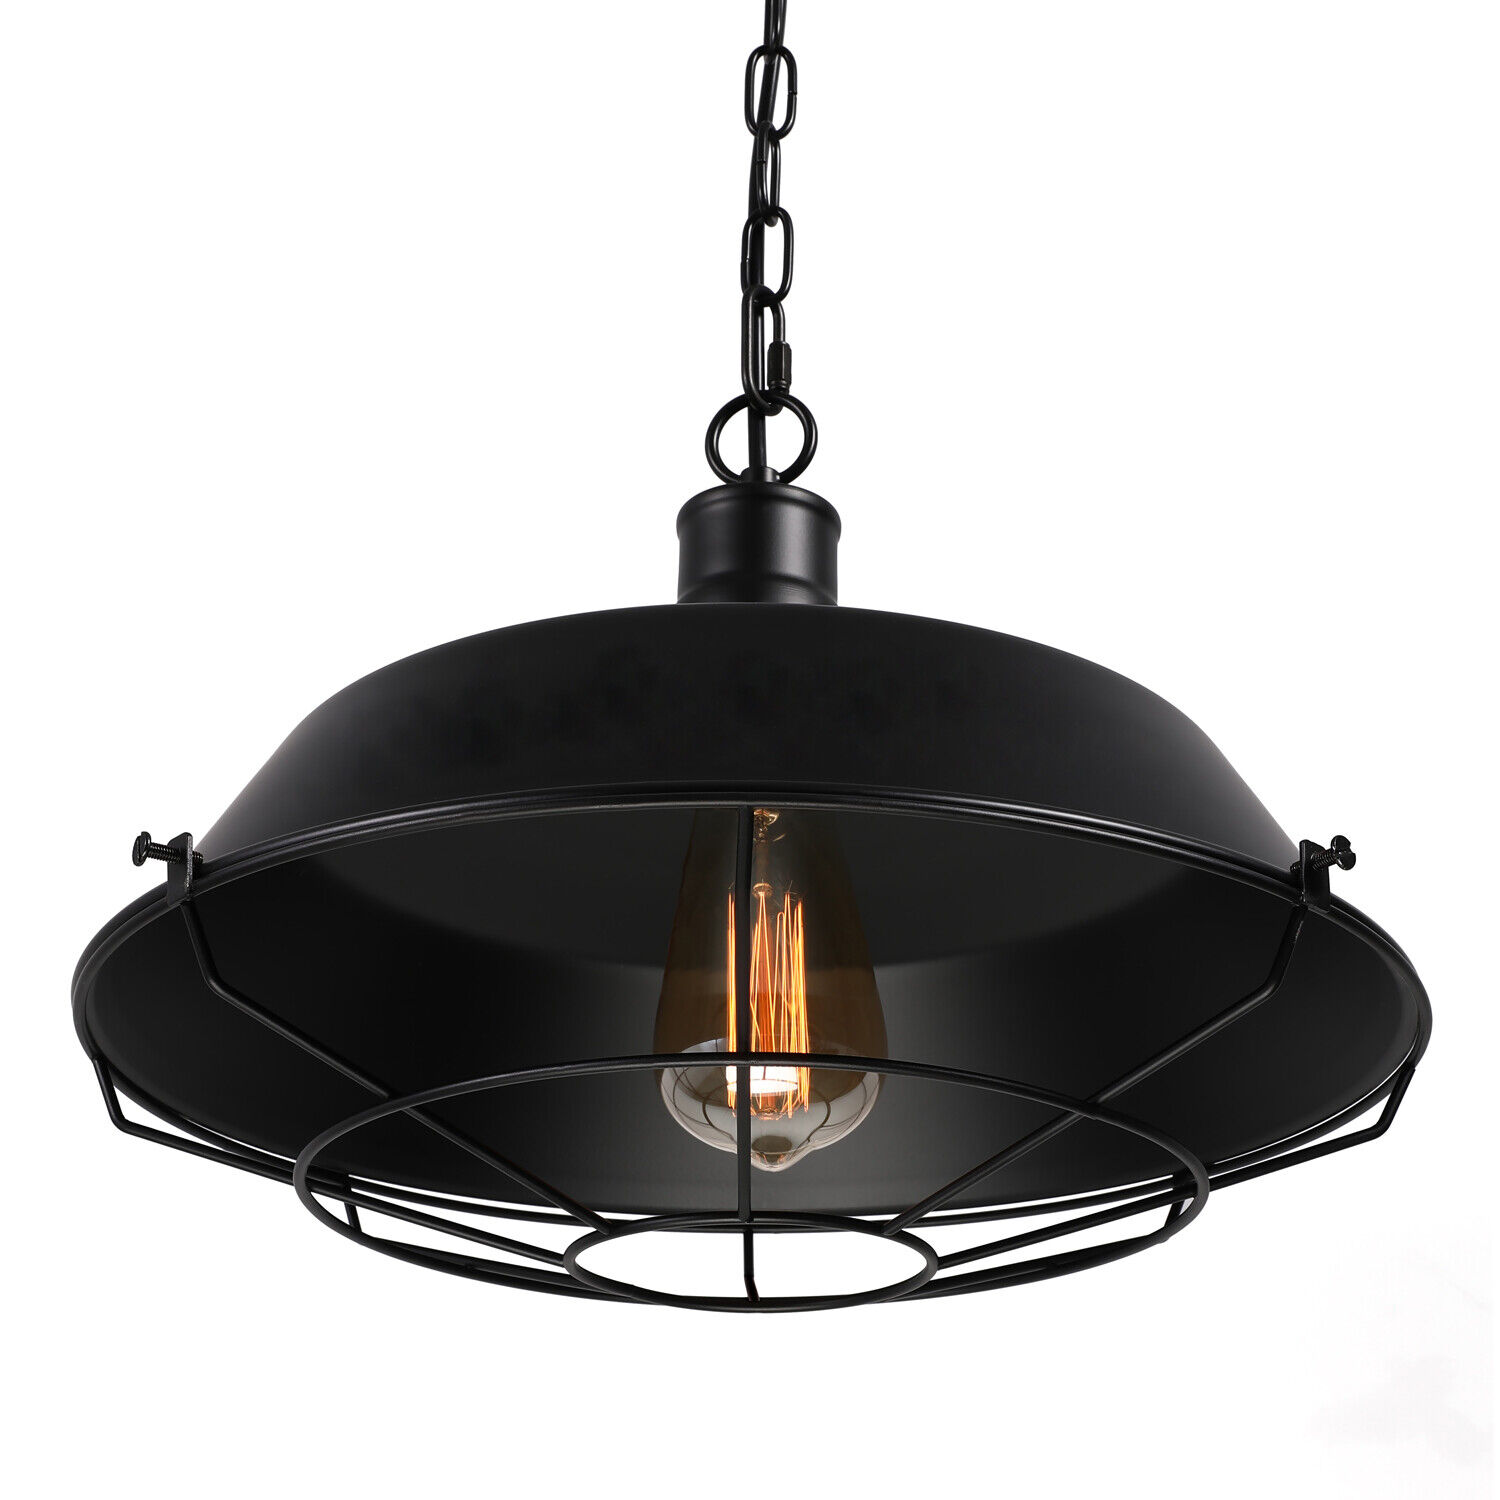 Details About Vintage Cage Pendant Lamp Chandelier Iron Ceiling Light Shade Fixture